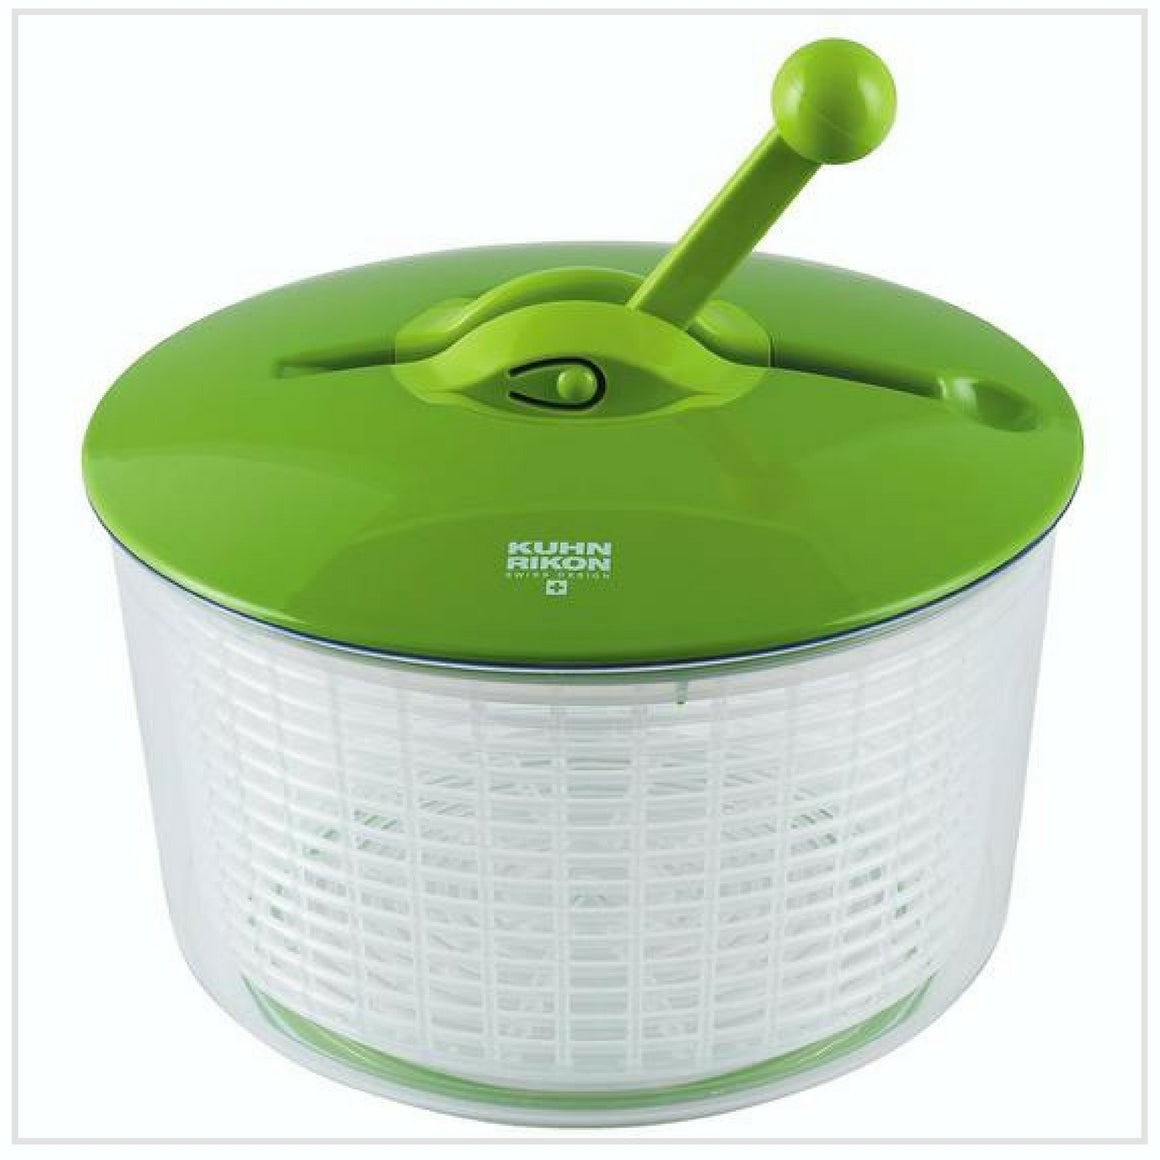 Ratchet Salad Spinner